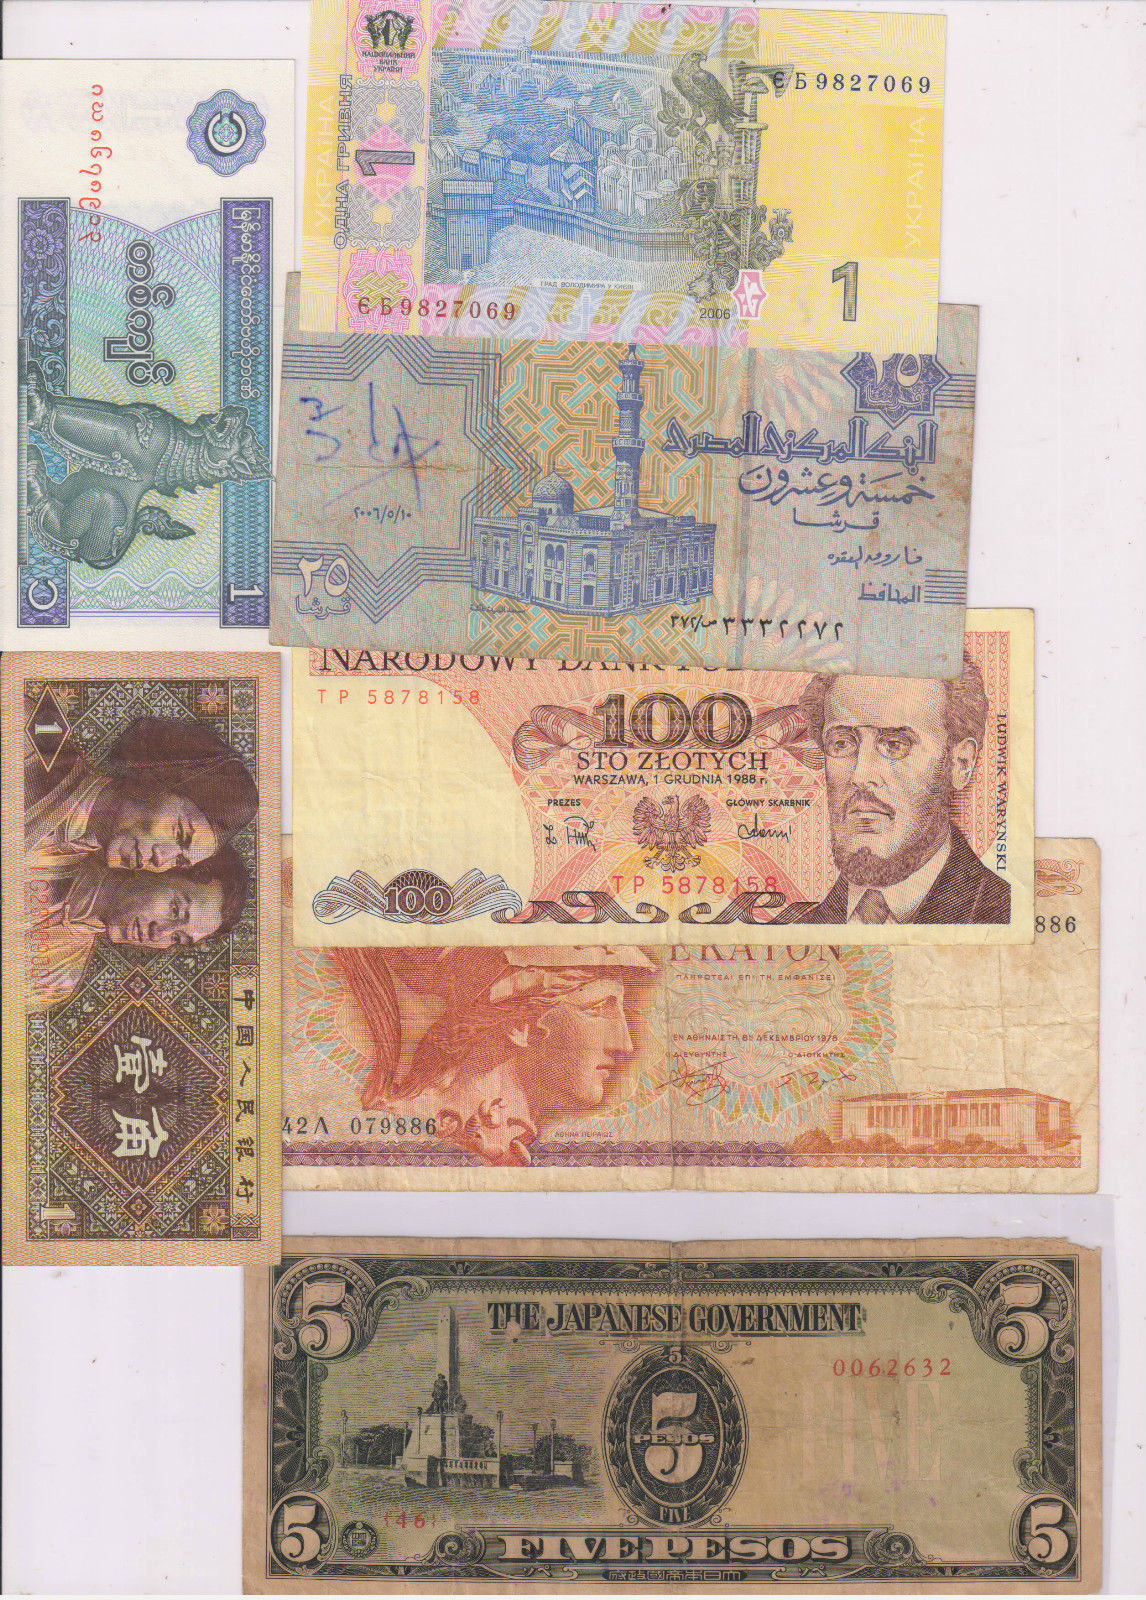 Indonesia ,Greece,Poland,Egypt,Ukraine,Myanmar,China - 7 currency notes w/  tears